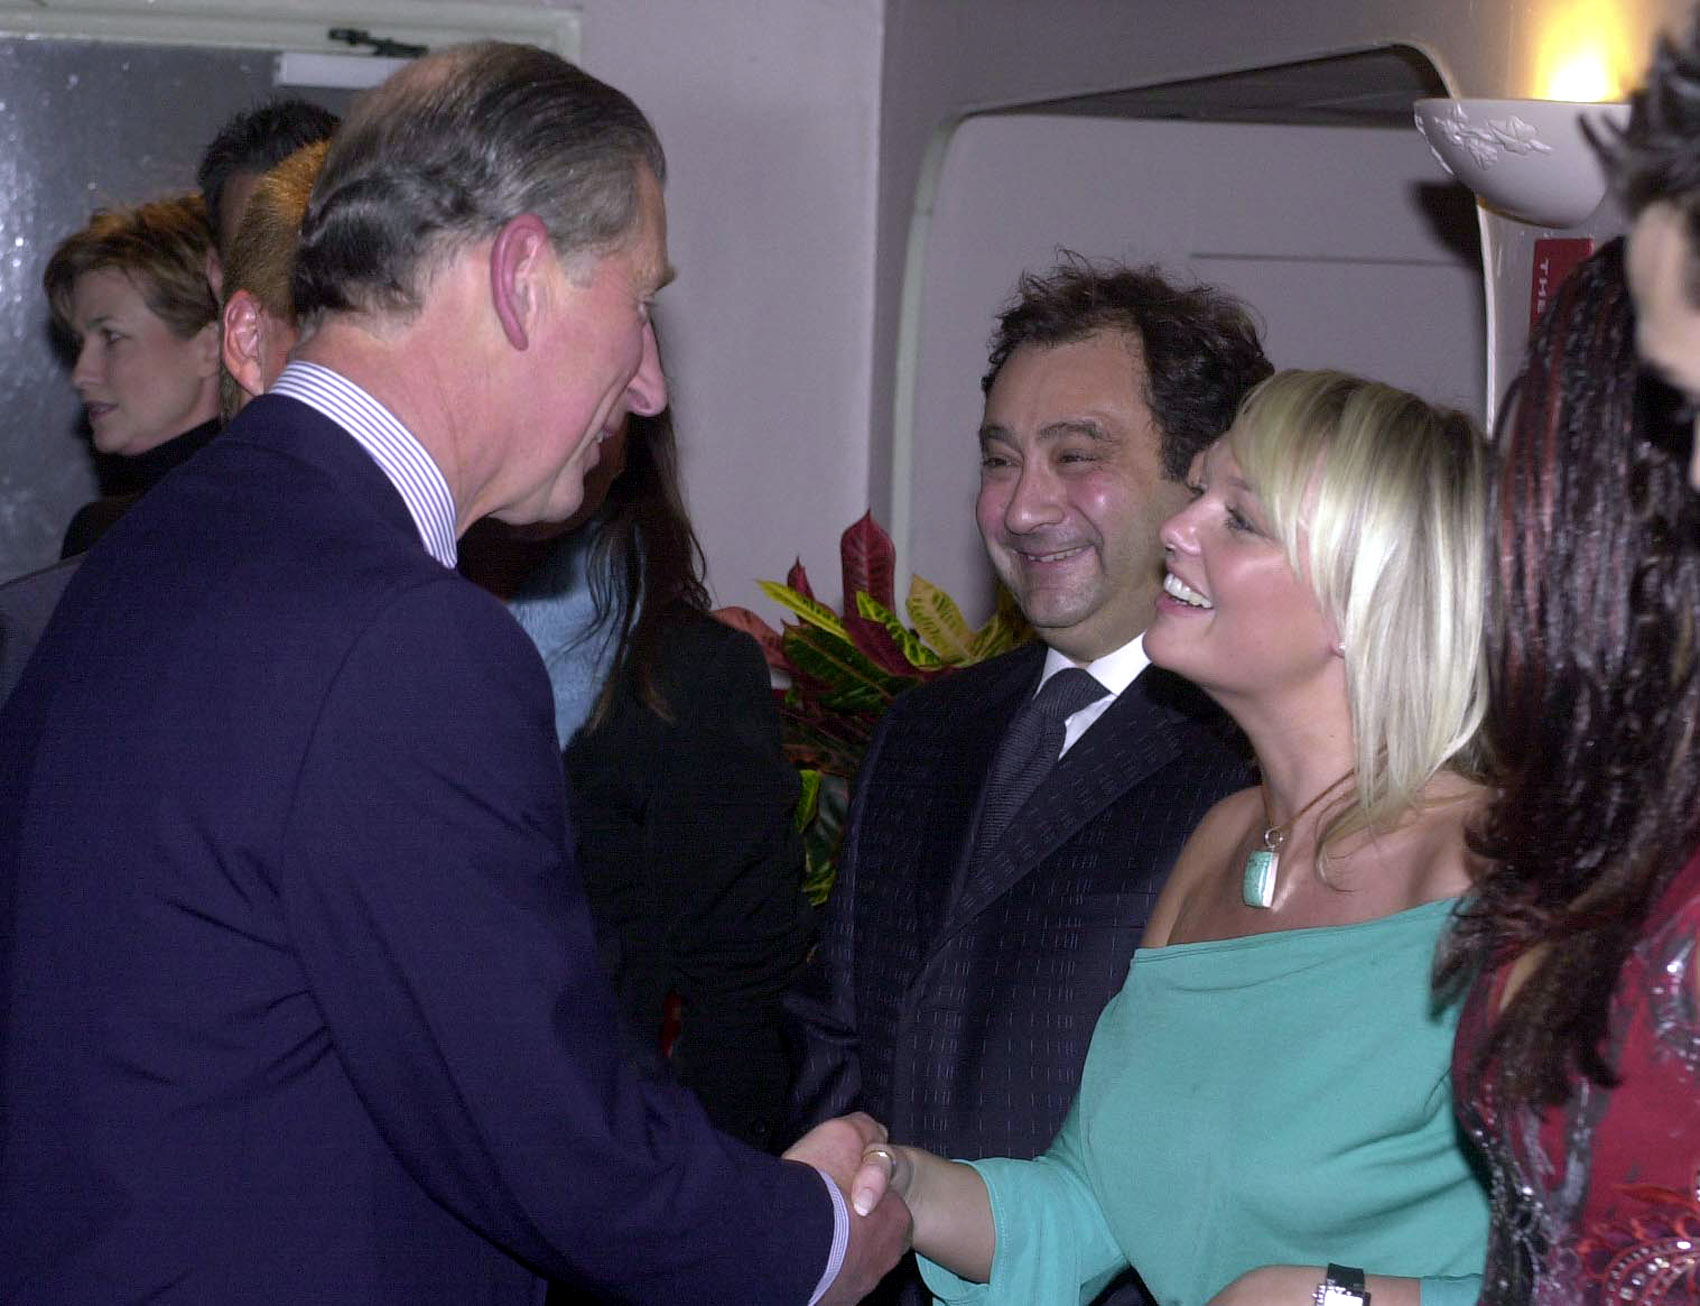 The Prince of Wales, Prince Charles, shakes hands with former 'Spice Girl' Emma Bunton backstage before the Will Young and Gareth Gates pop concert in aid of the Princes's trust at Wembley Arena.